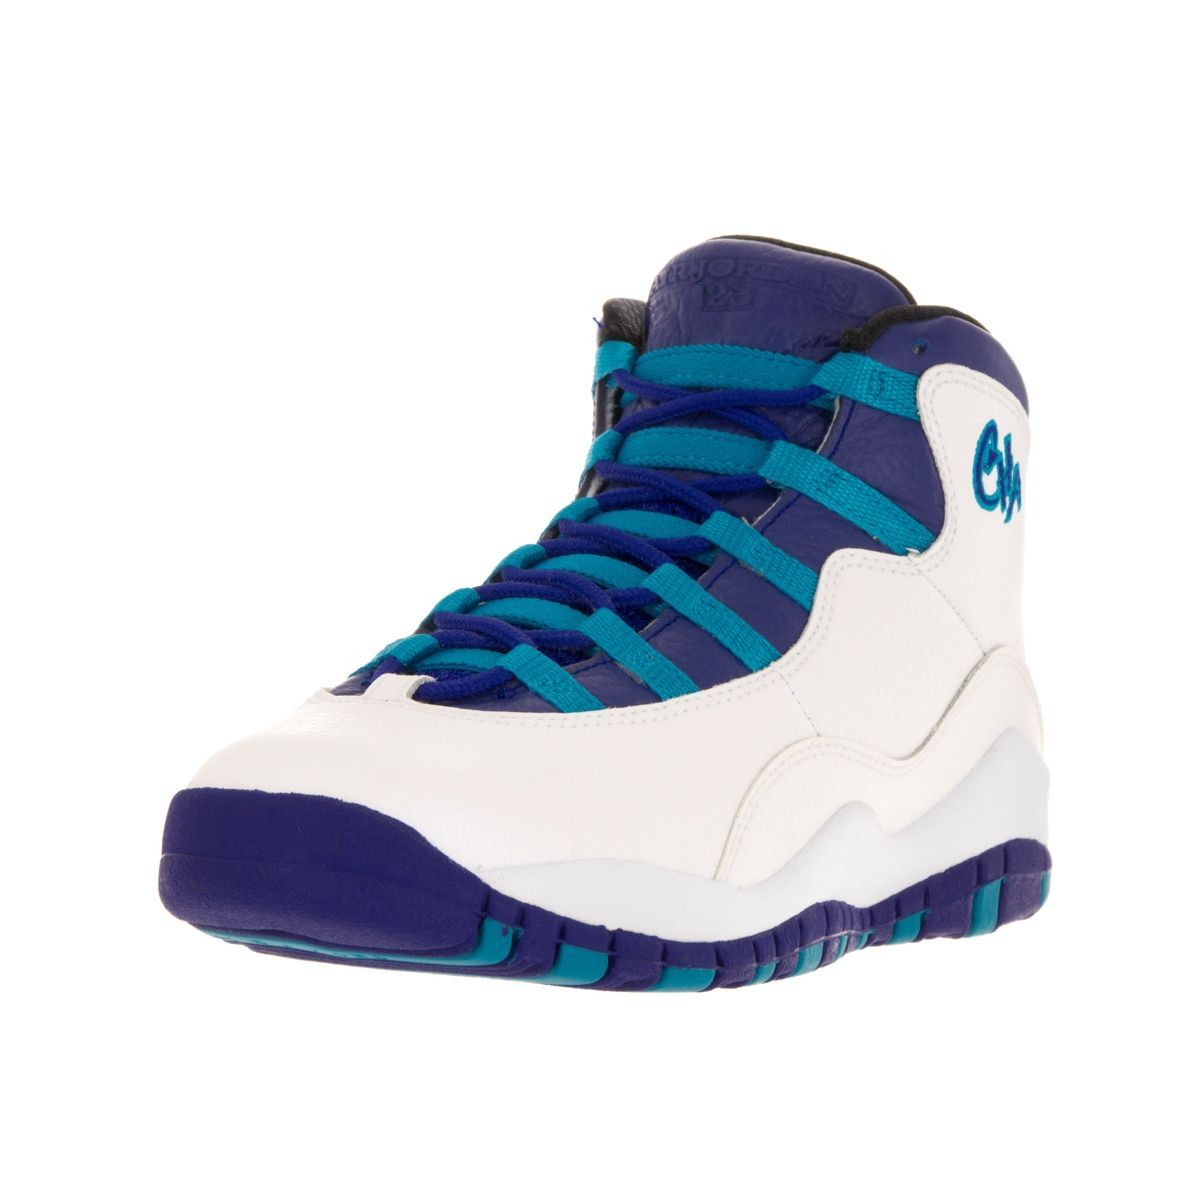 Nike Jordan Kids Air Jordan 10 Retro Bg /Concord Blue Lagoon/Black  Basketball Shoe